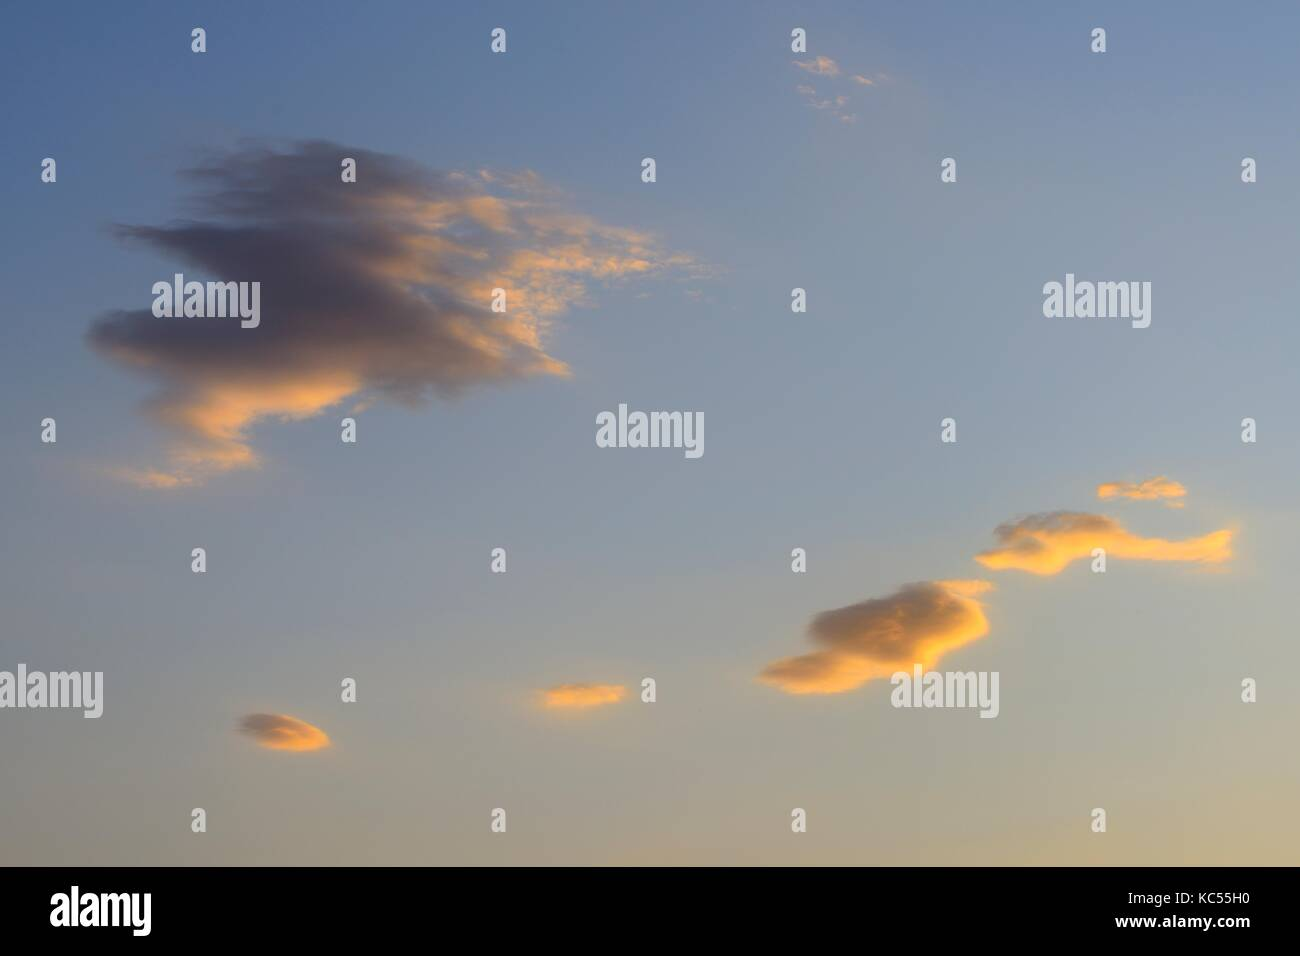 Small clouds at sunset, Concepción, Paraguay - Stock Image